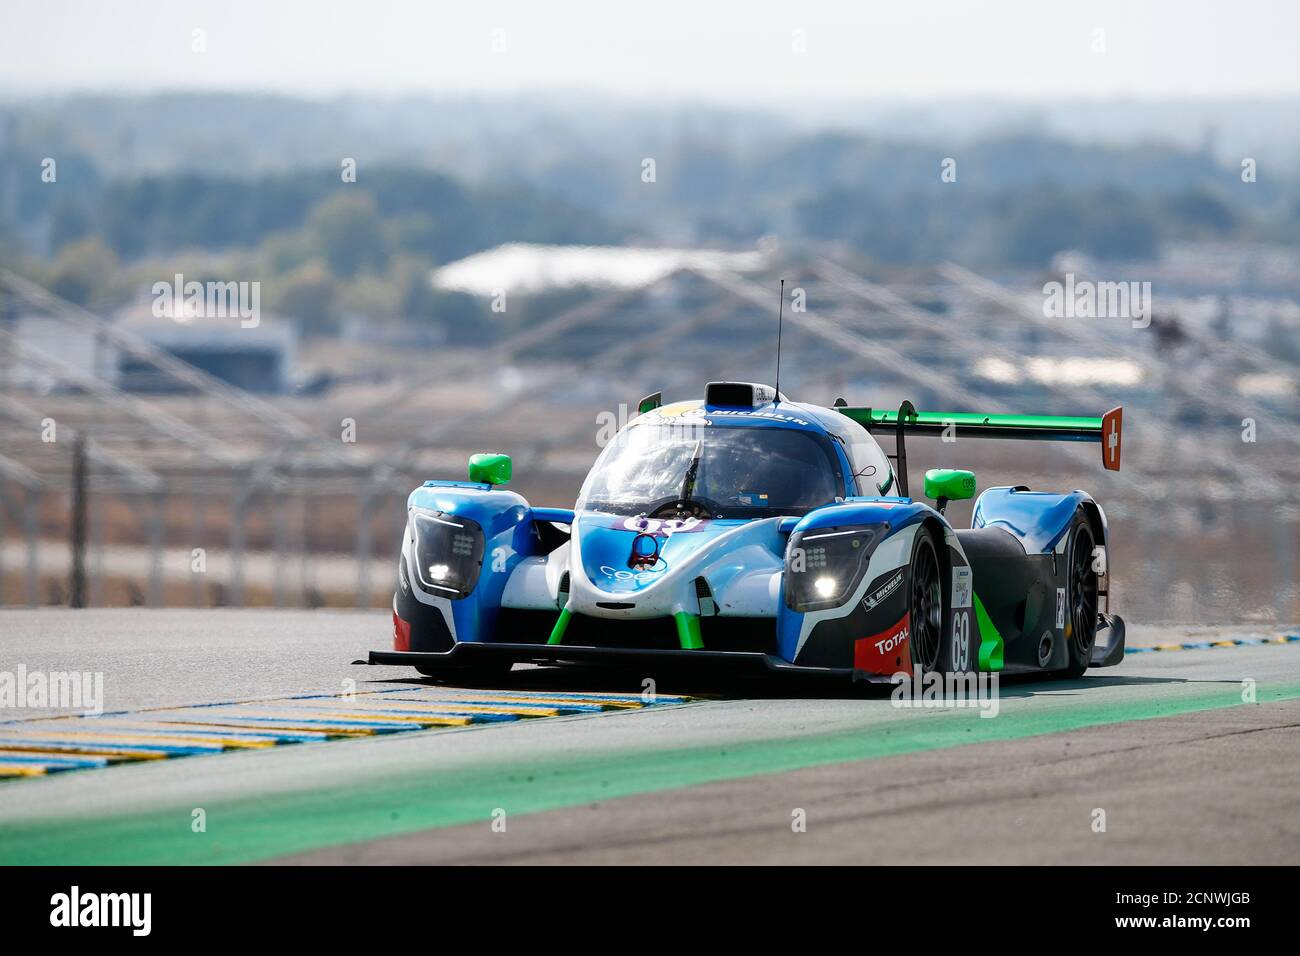 Bell Cars High Resolution Stock Photography and Images - Alamy